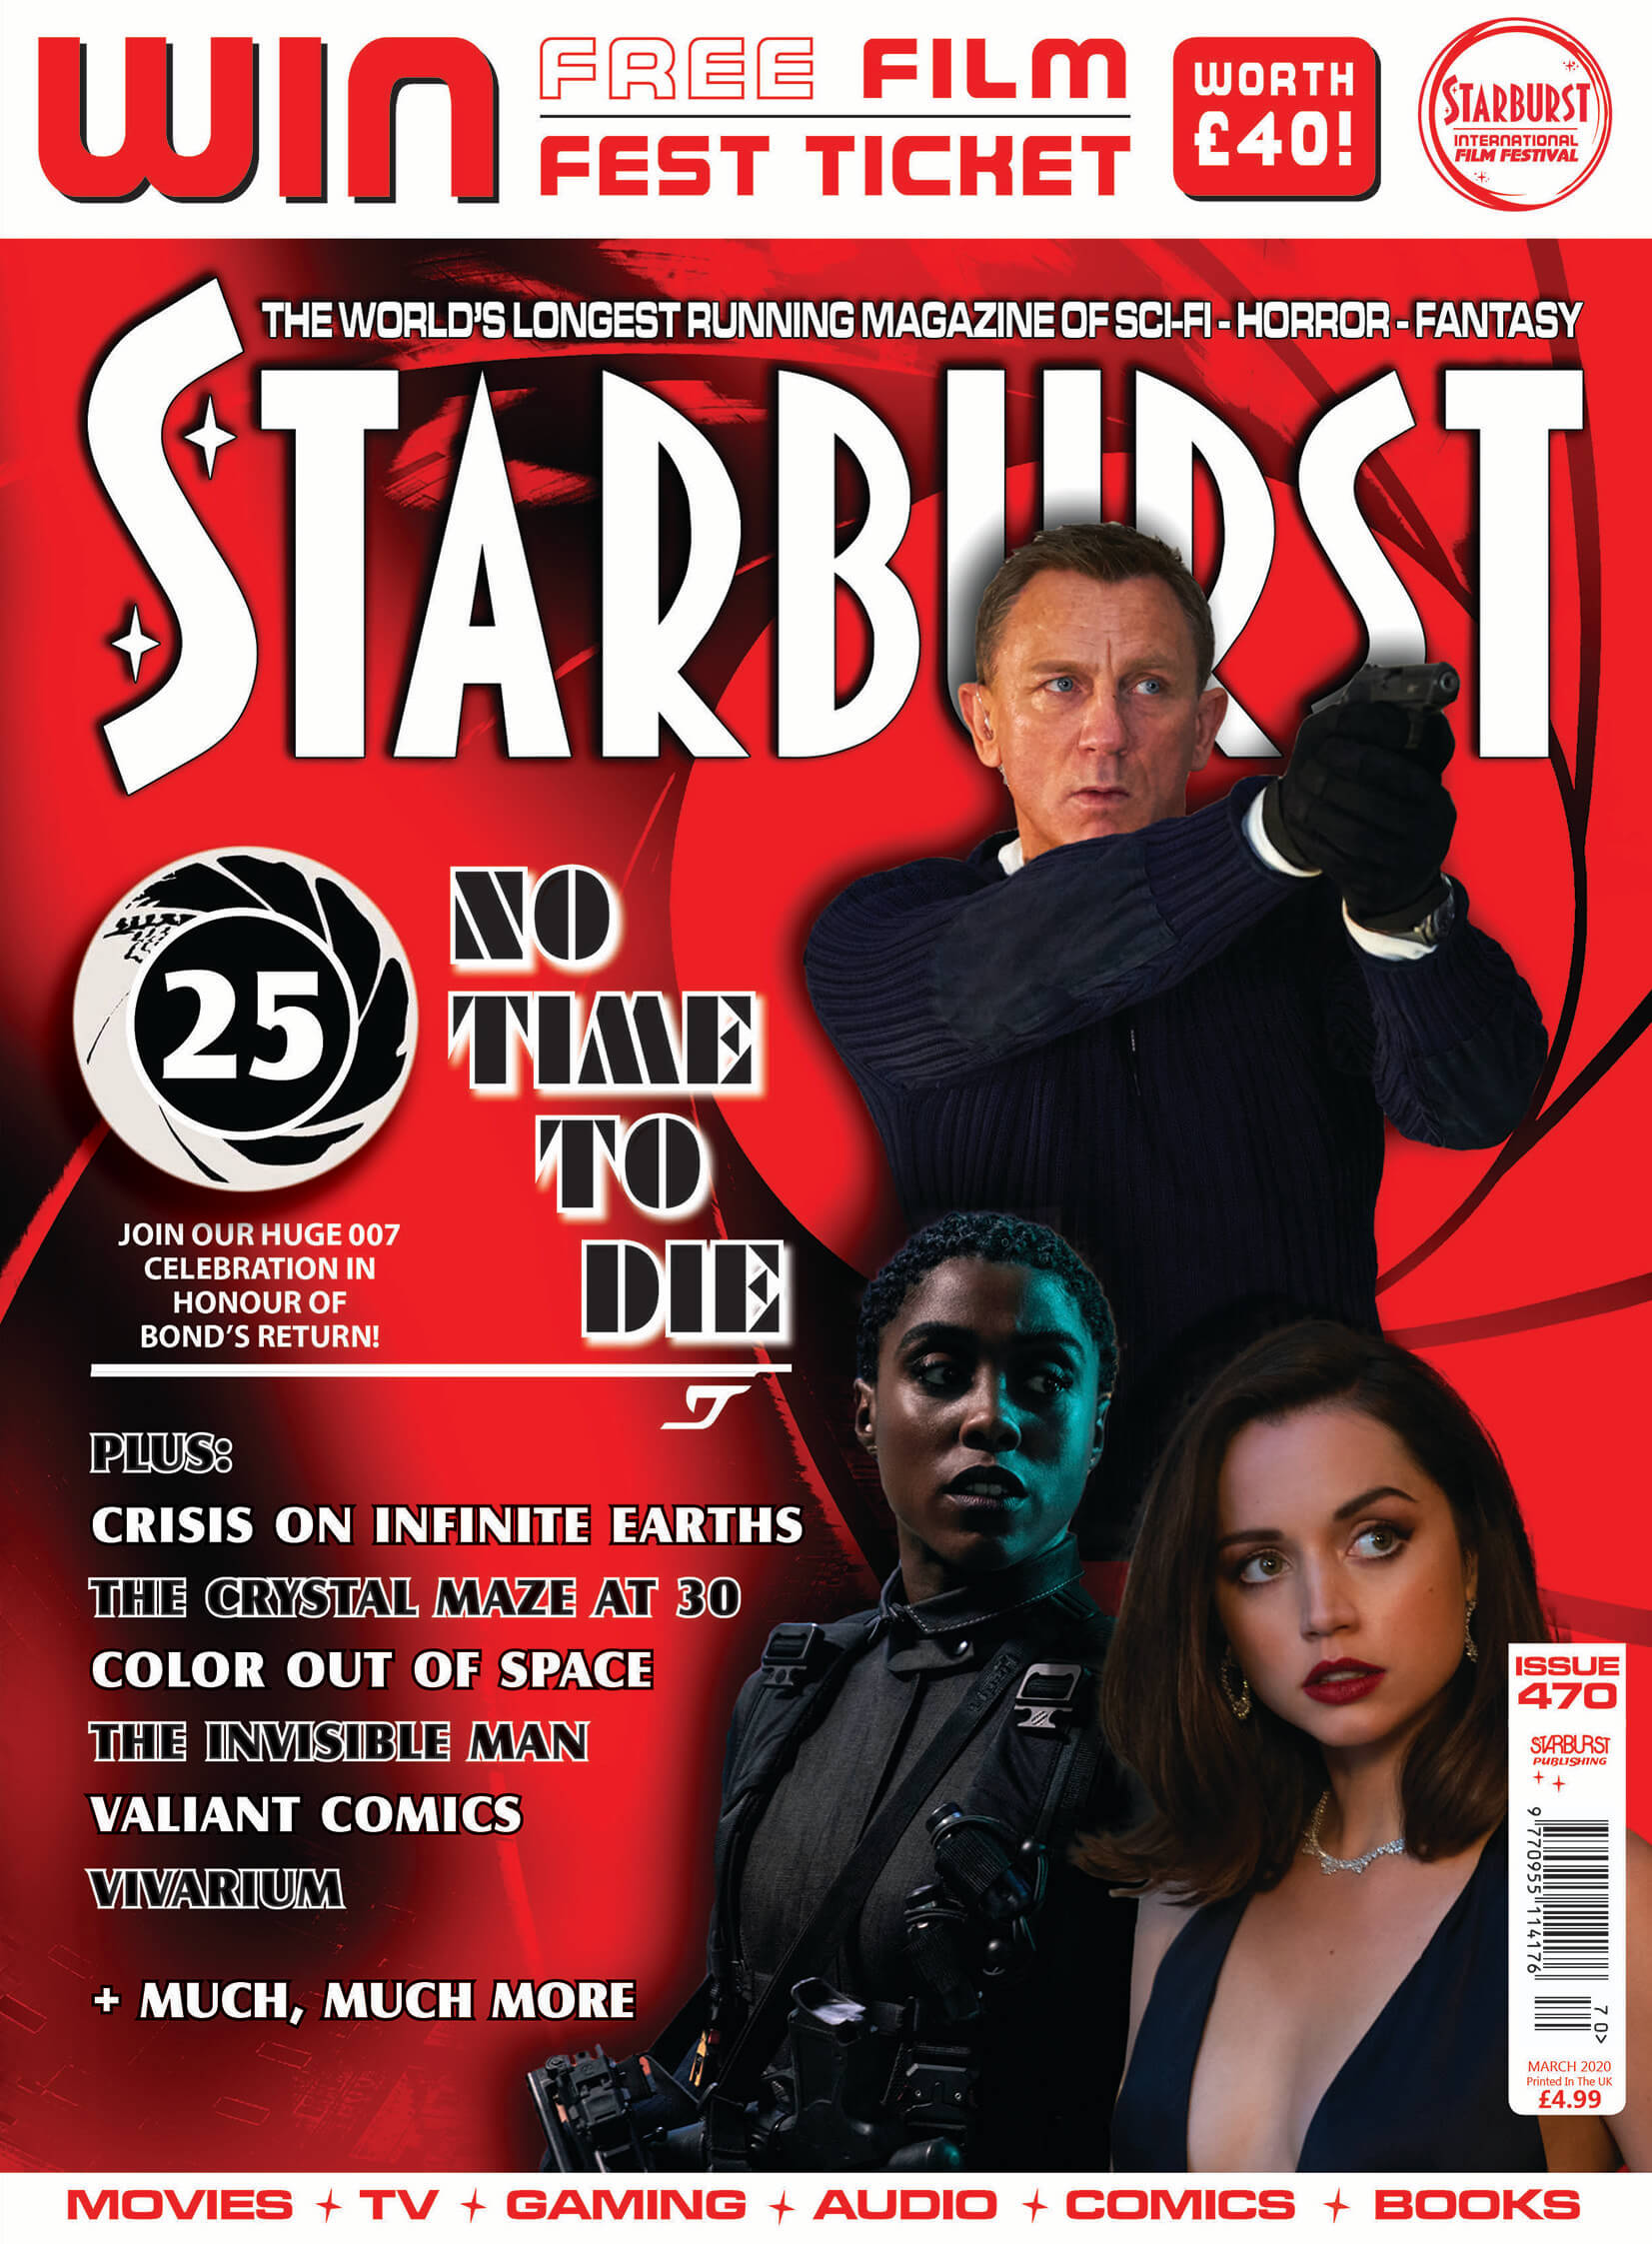 New issue of 'Starburst' mag is James Bond special